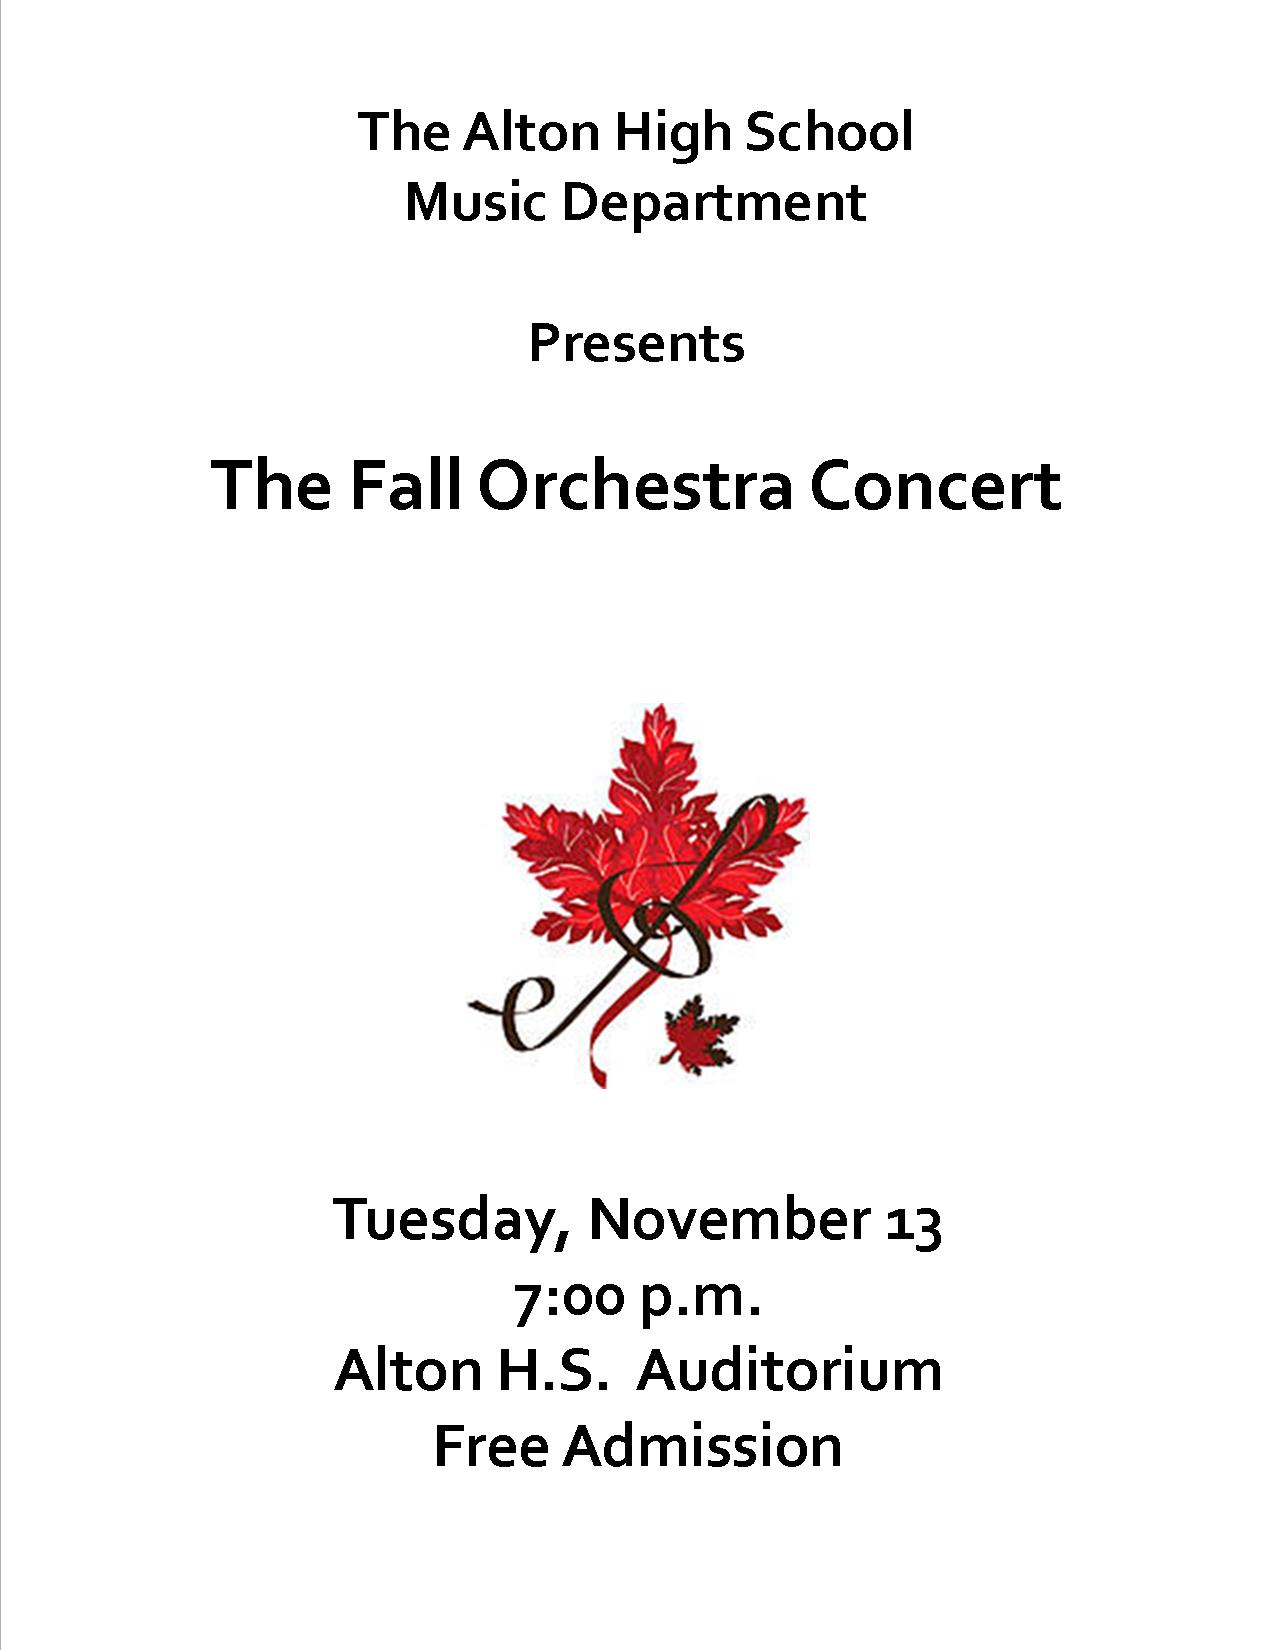 Fall Orchestra Concert Flier